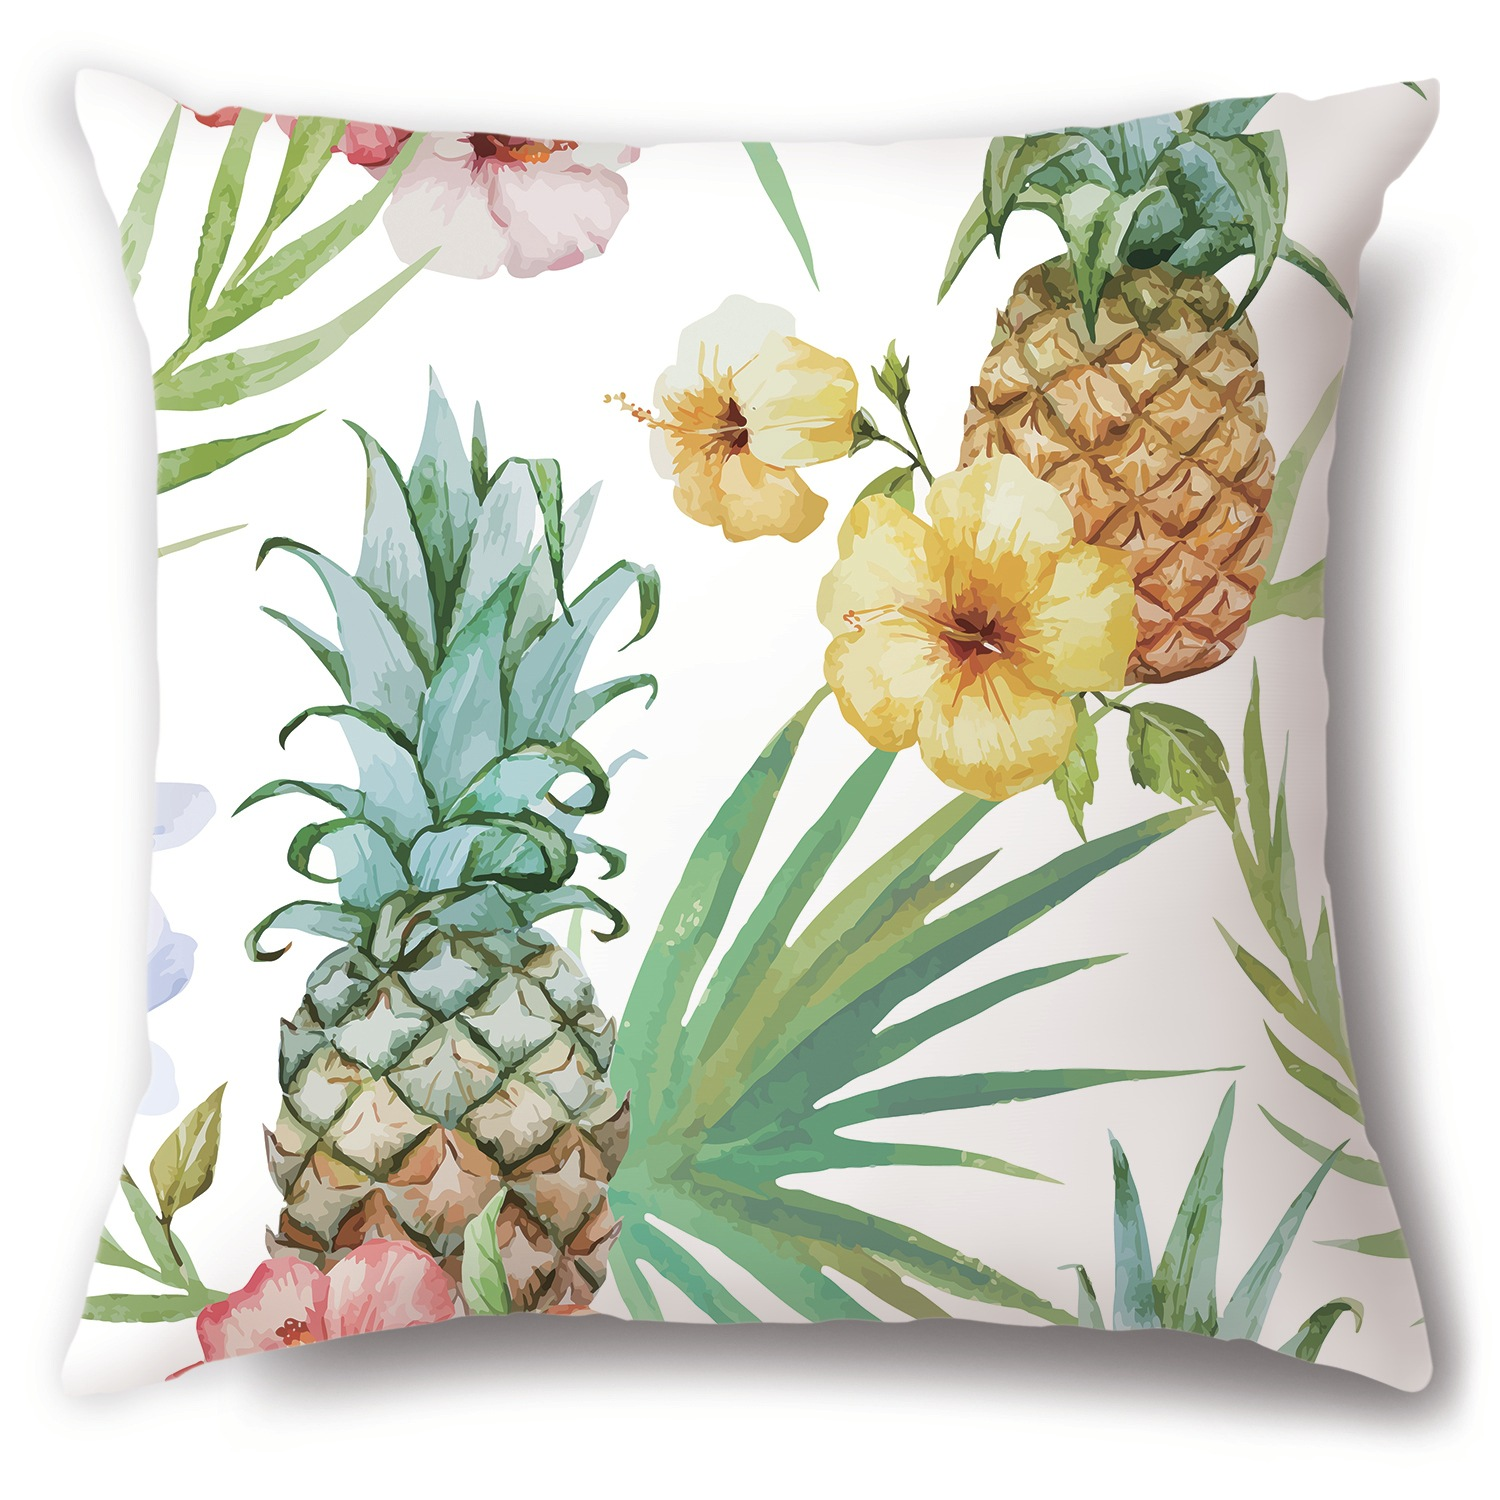 Captivating Pineapple Print Pillowcase for Summer Vacation Homes